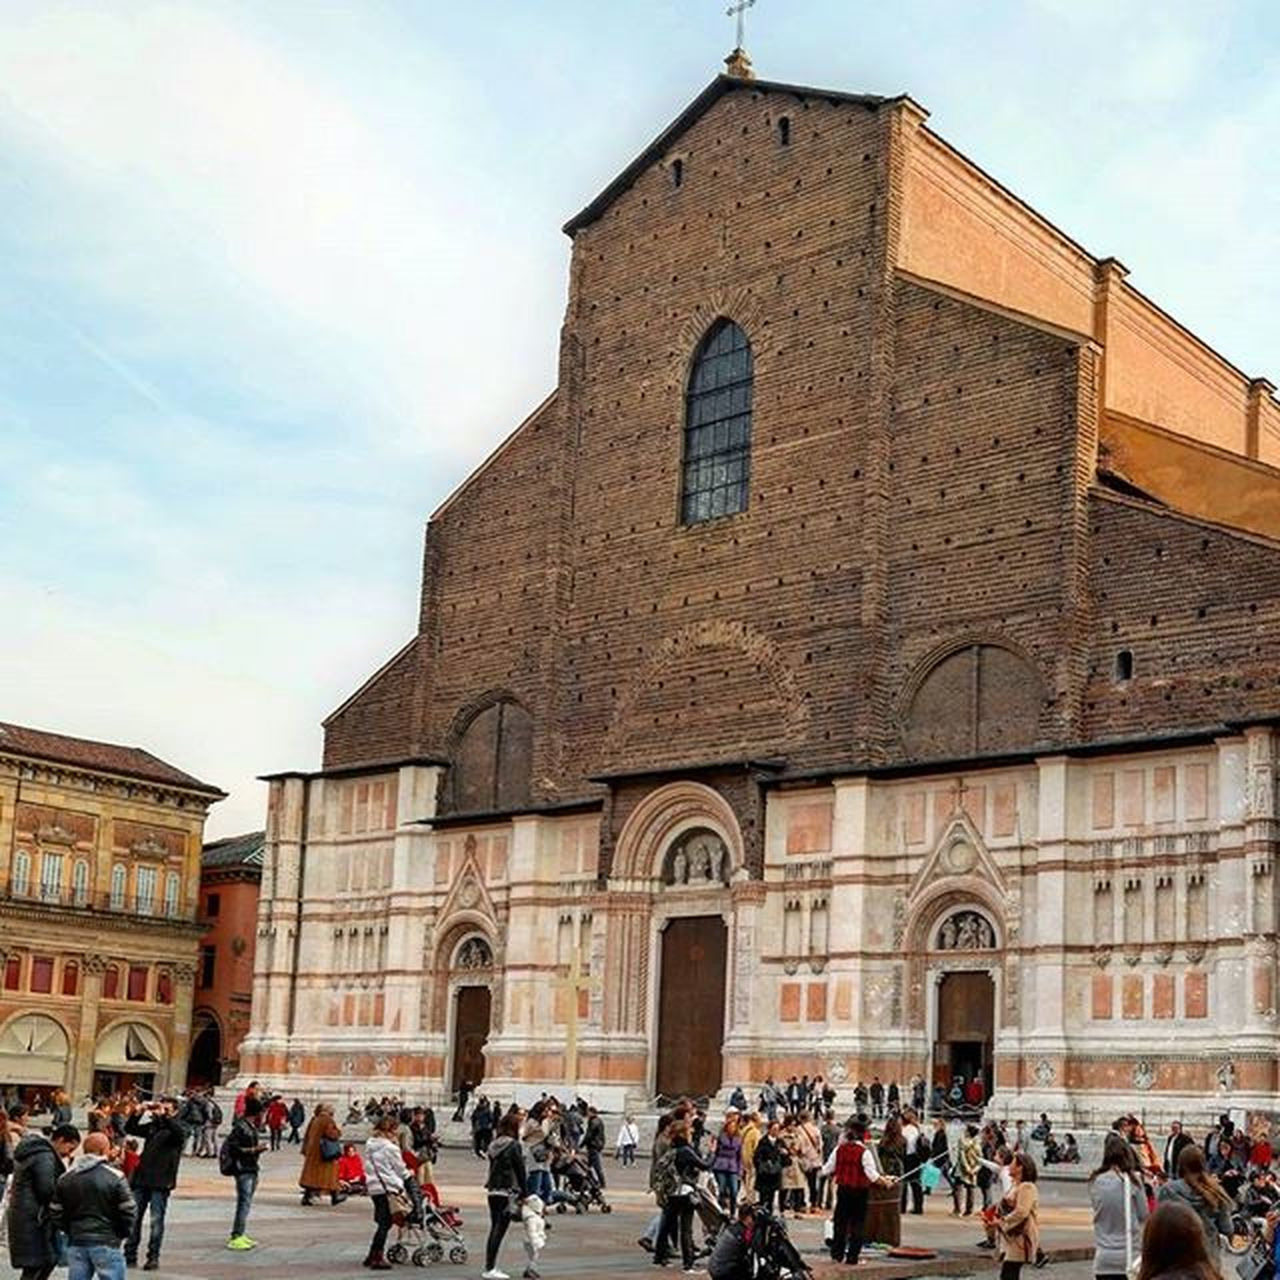 The Basilica of San Petronio is the main church of Bologna...with unfinished facade SanPetronio Igbologna Bolognawelcome Igemiliaromagna Basilica Bolognacity